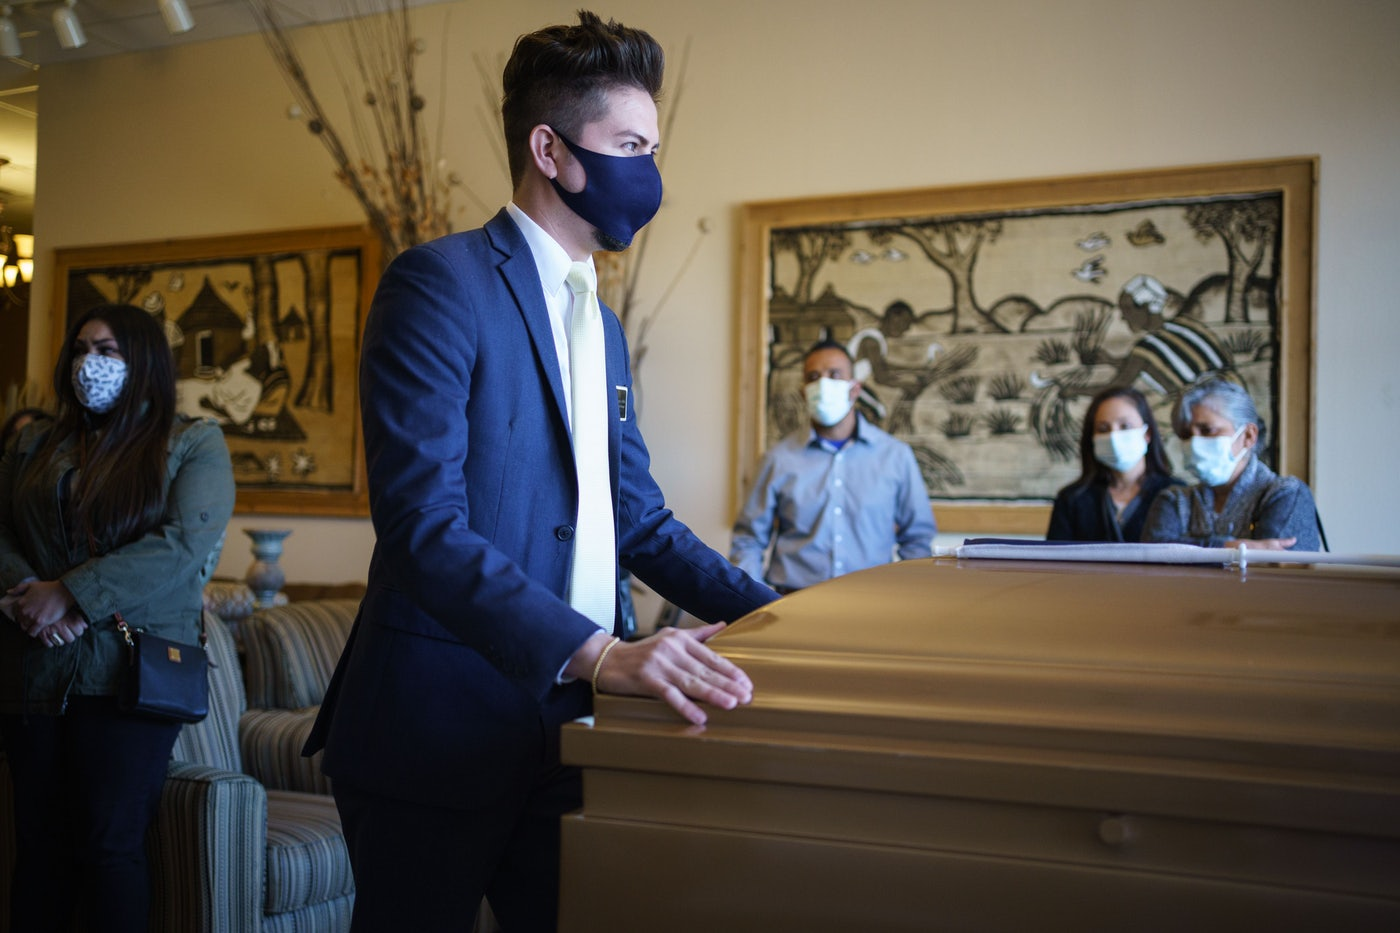 The manager of Perches Funeral Home pushes the casket of Humberto Rosales, a care provider who died of Covid-19 complications.